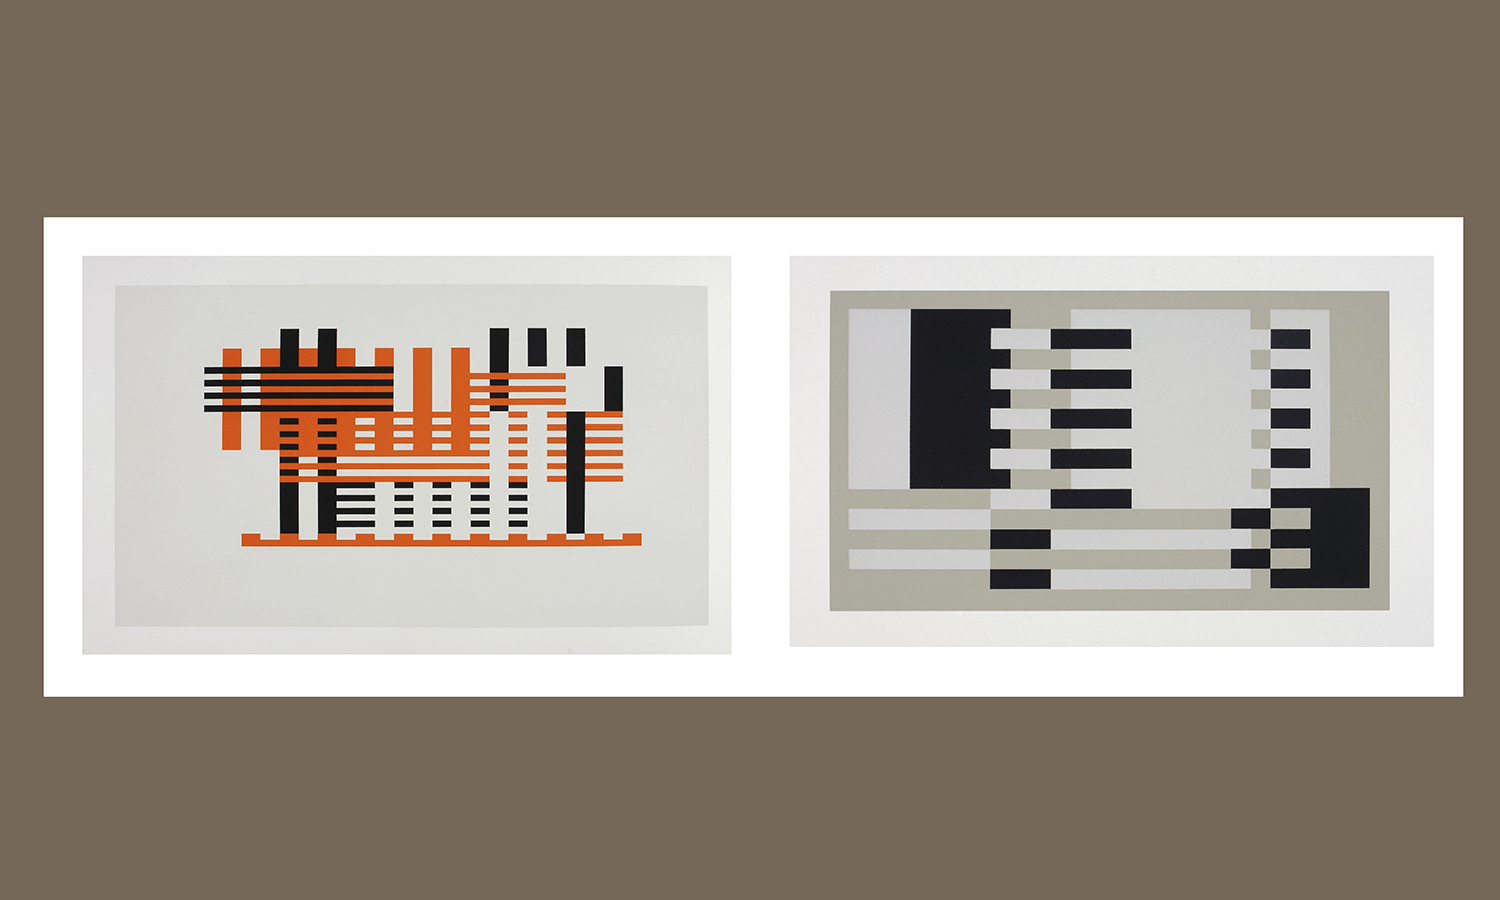 """Formulation: Articulation, II:31, 1972.""""Screenprint, 38 x 102 cm. Gift of  Mr. and Mrs. William E. Welsh, Jr. P'84. hws-a-253. ©2012 The Josef  and Anni Albers Foundation I Artists Rights Society, New York (ARSNY)""""1?Sonfist, Alan, Wolfgang Becker, and Robert Rosenblum.  Nature, the End of Art:""""Environmental Landscapes.( Gli ori, Florence, Italy; New York, NY, 2004), 14. """